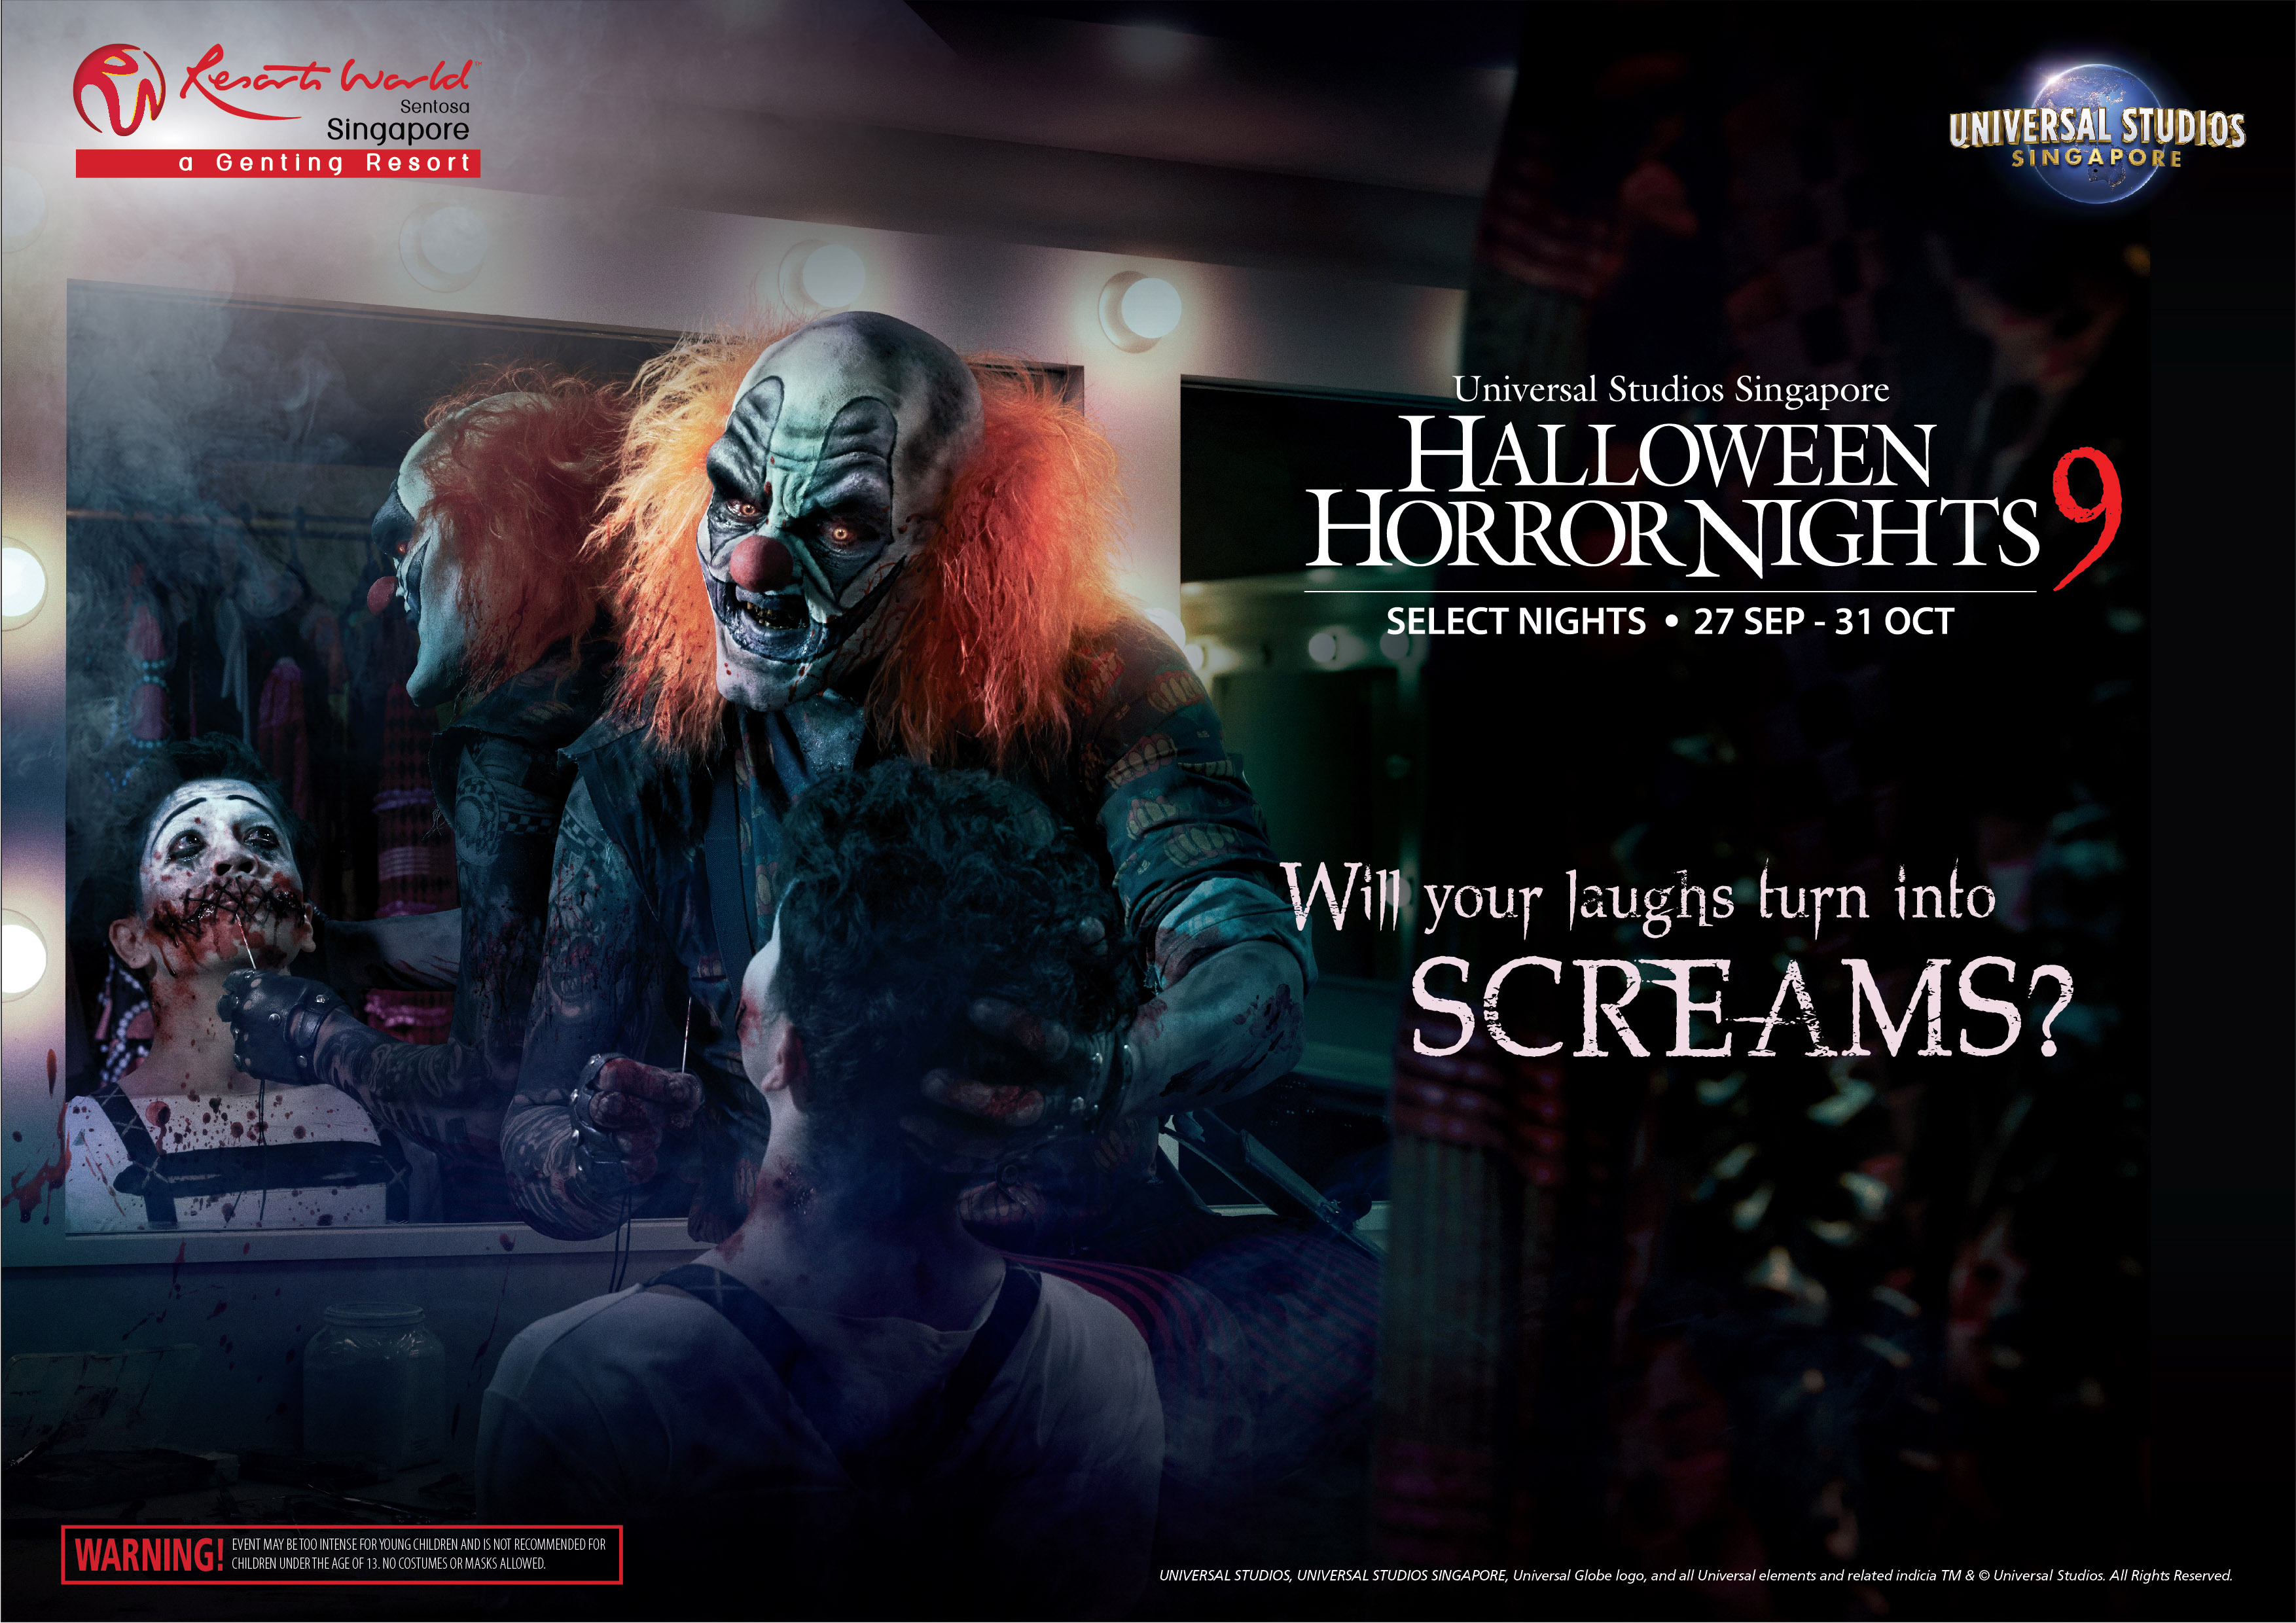 Halloween is coming early at Universal Studios Singapore - First-Ever Haunted House by Renowned Thai Filmmakers - Alvinology